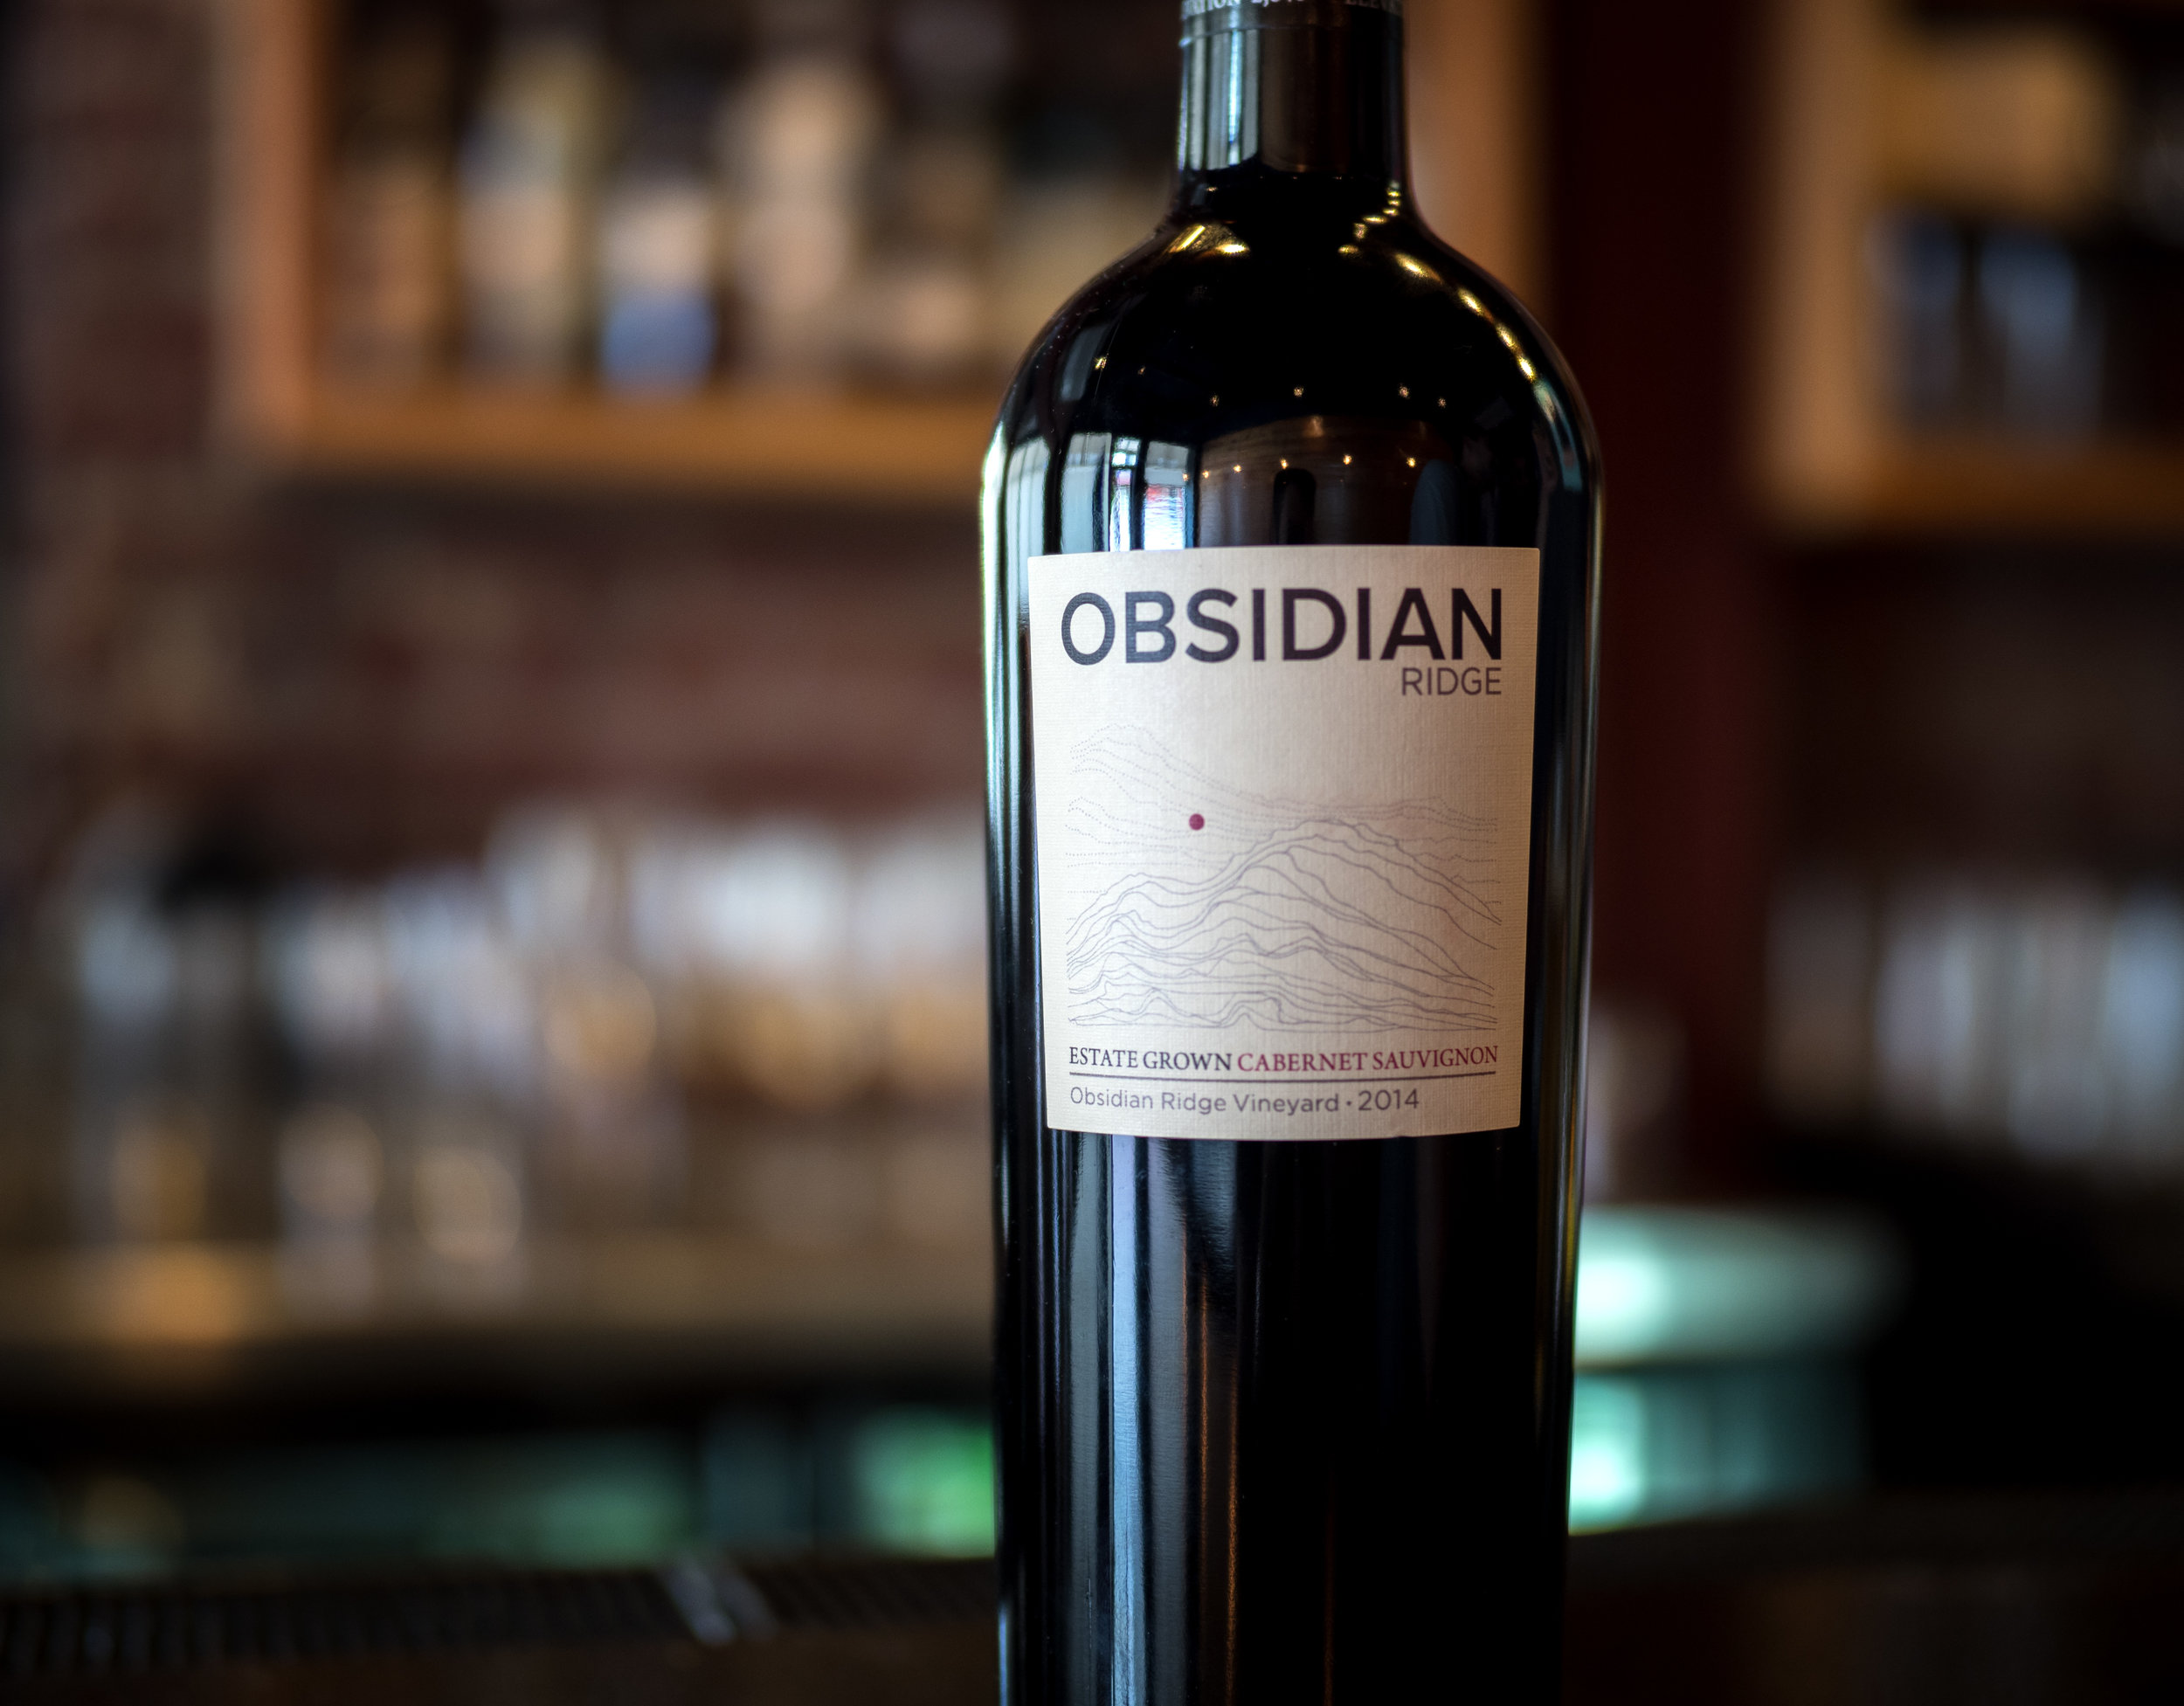 Musings by the Glass - Obsidian Ridge Estate-Grown Cabernet Sauvignon